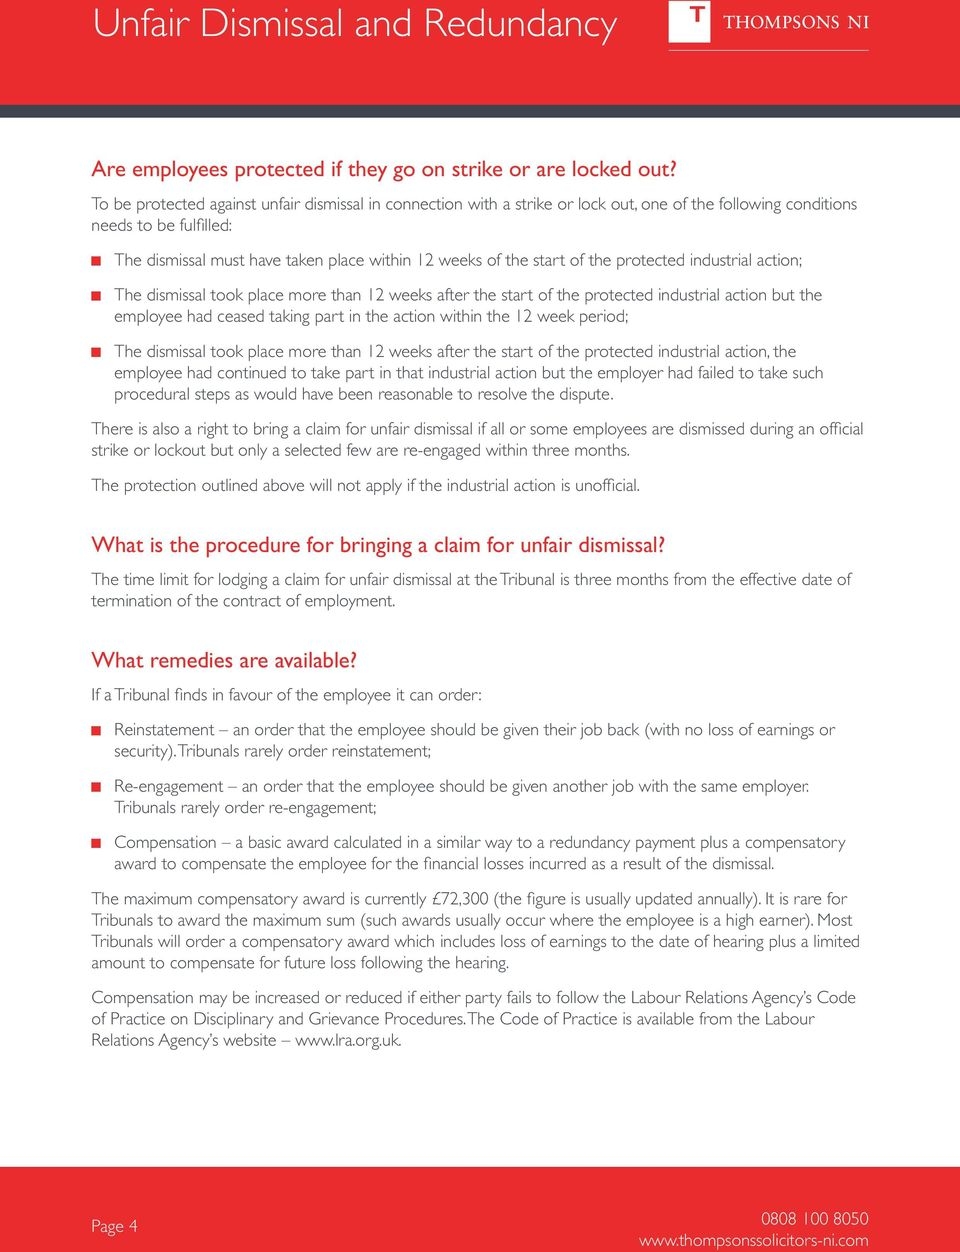 start of the protected industrial action; The dismissal took place more than 1 weeks after the start of the protected industrial action but the employee had ceased taking part in the action within